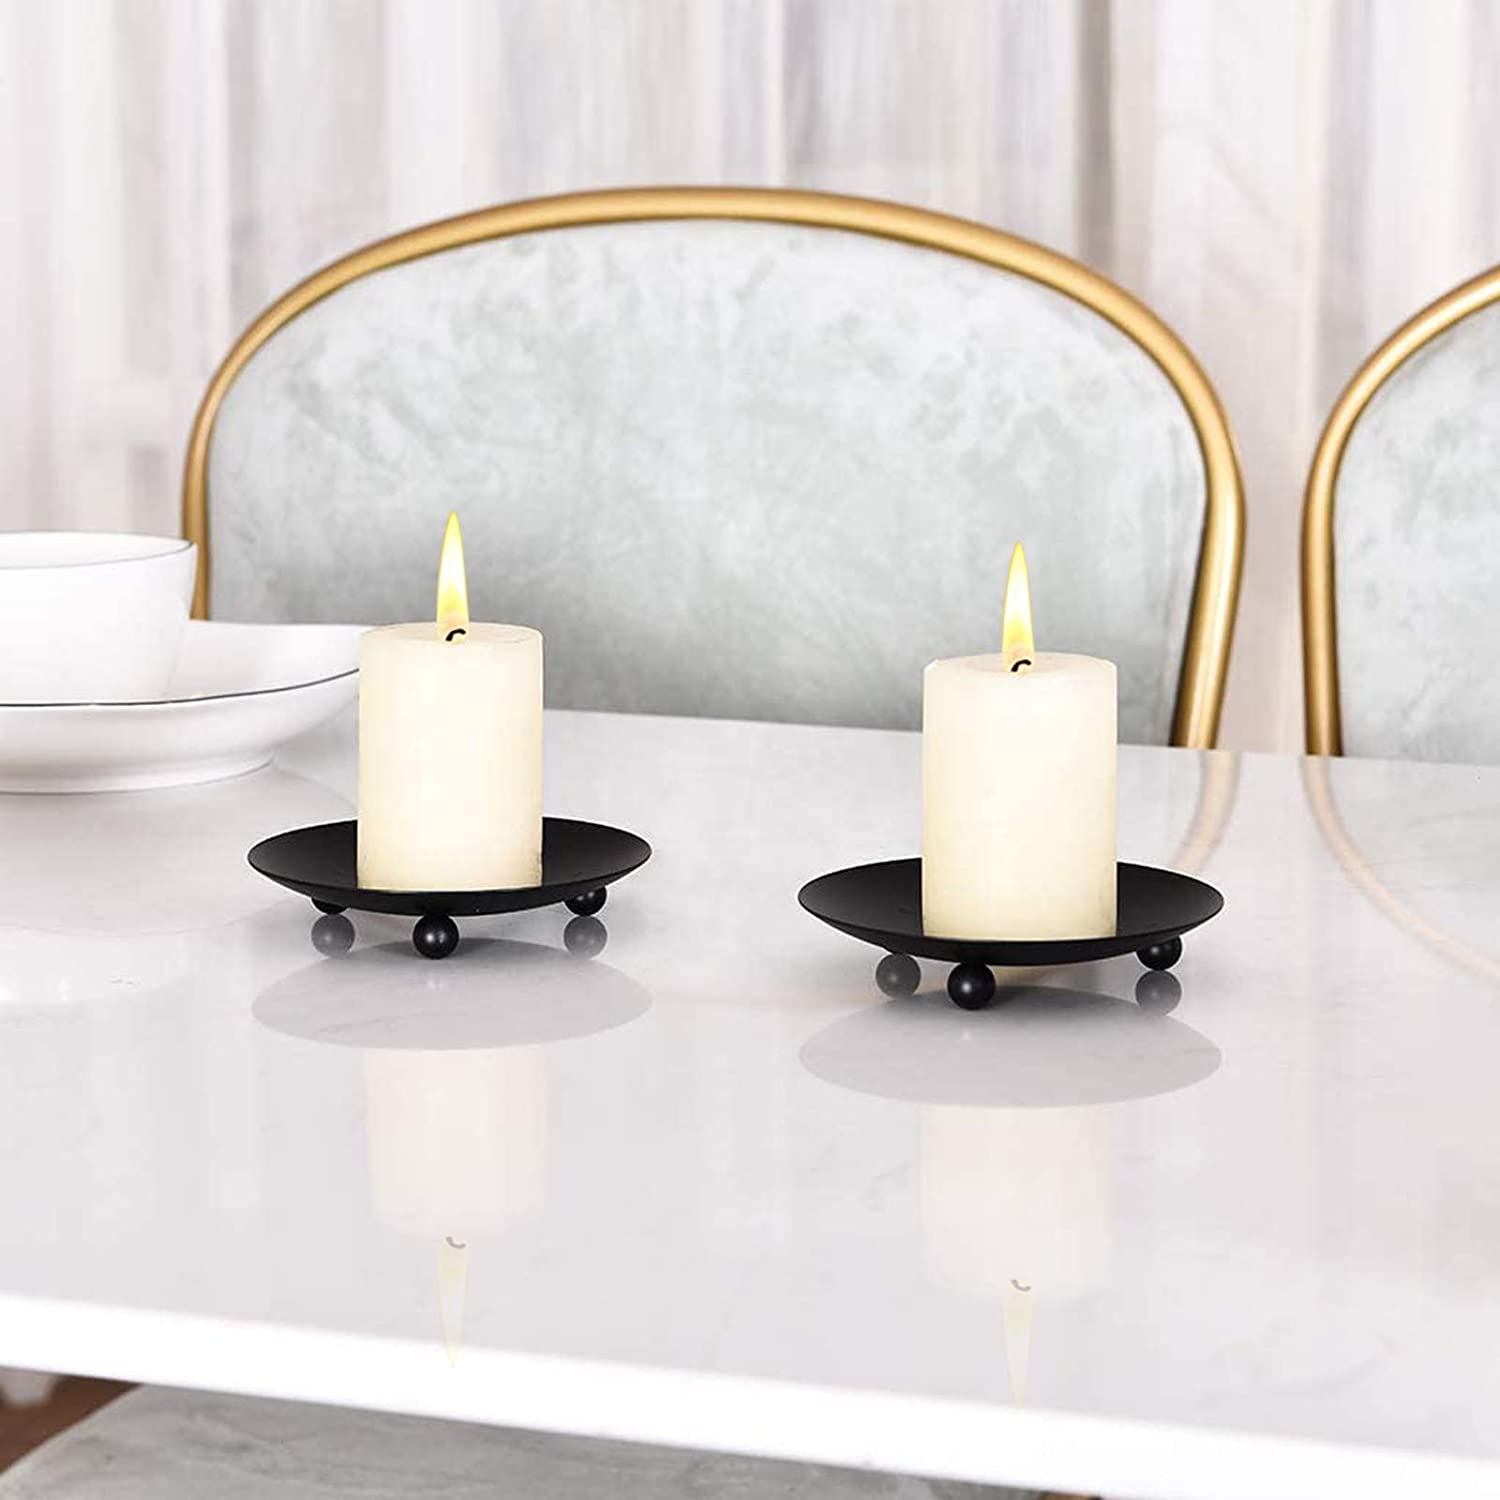 Decorative Pillar Candle Holders 4 Pcs Iron Plate Candle Holder Incense Cones Golden Spa Pedestal Tealight Candle Holders for LED /& Wax Candles Tables Weddings